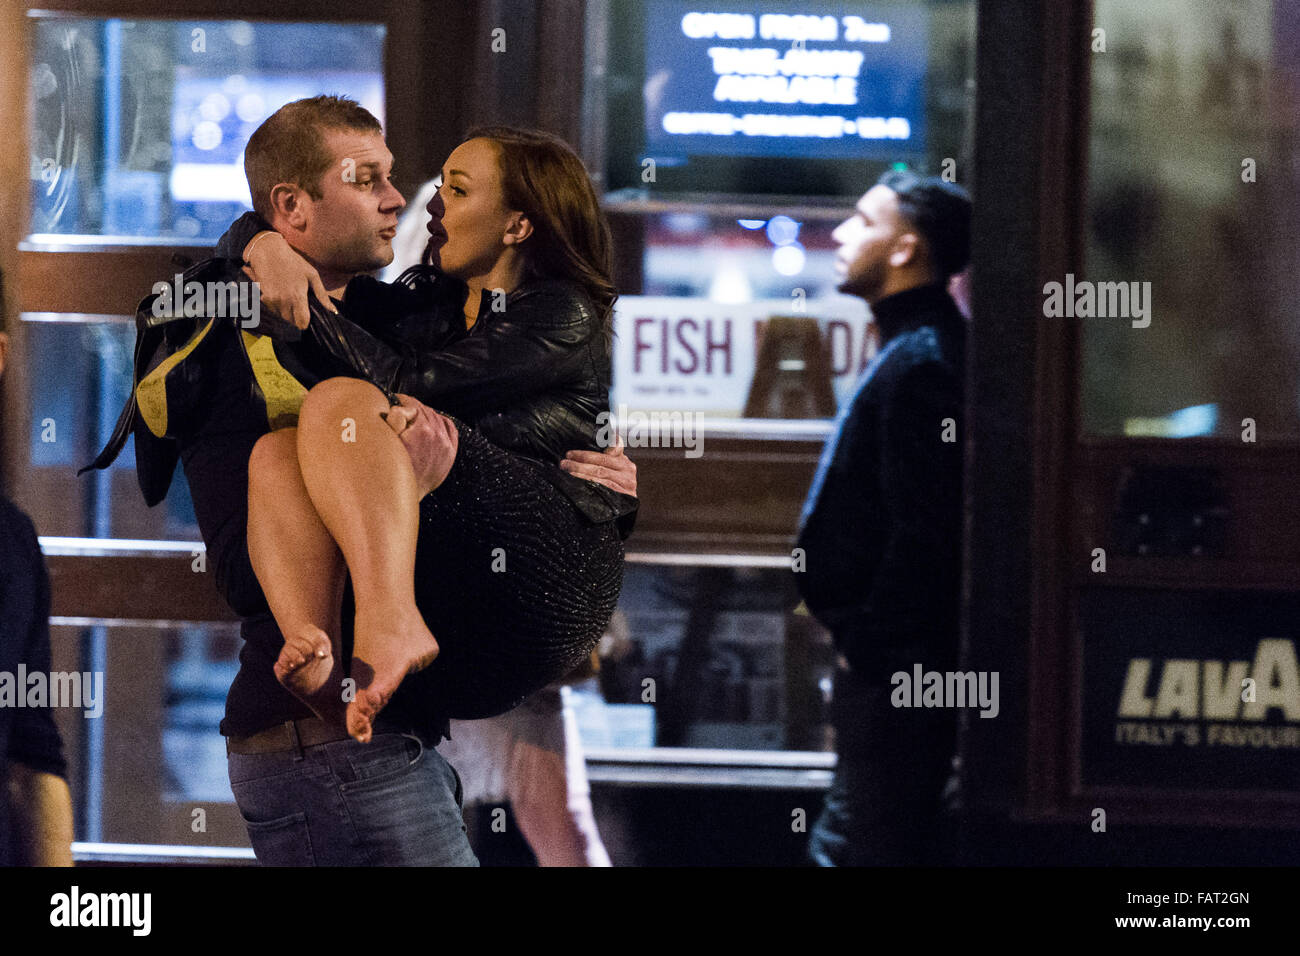 Pictured: A man carries a shoeless woman. Re: New Year's Eve in Cardiff, South Wales, UK. Early hours of Friday - Stock Image